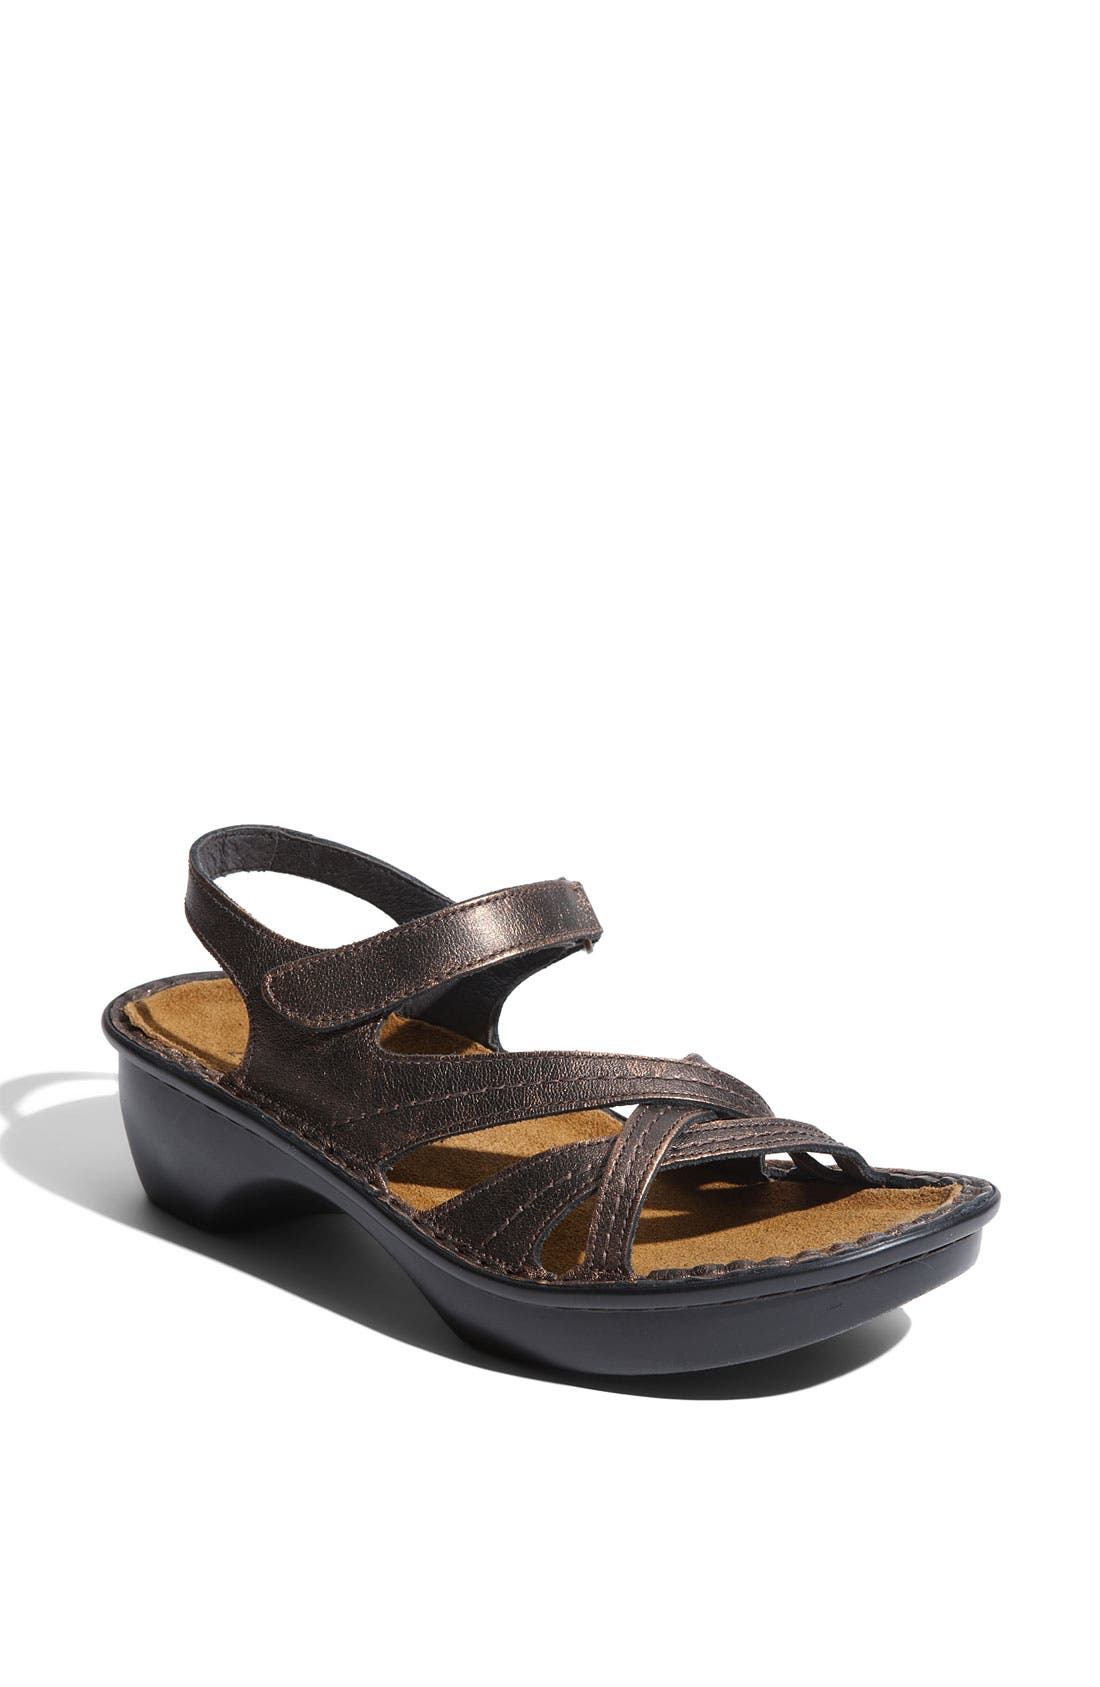 'Paris' Sandal,                         Main,                         color, BURNT COPPER